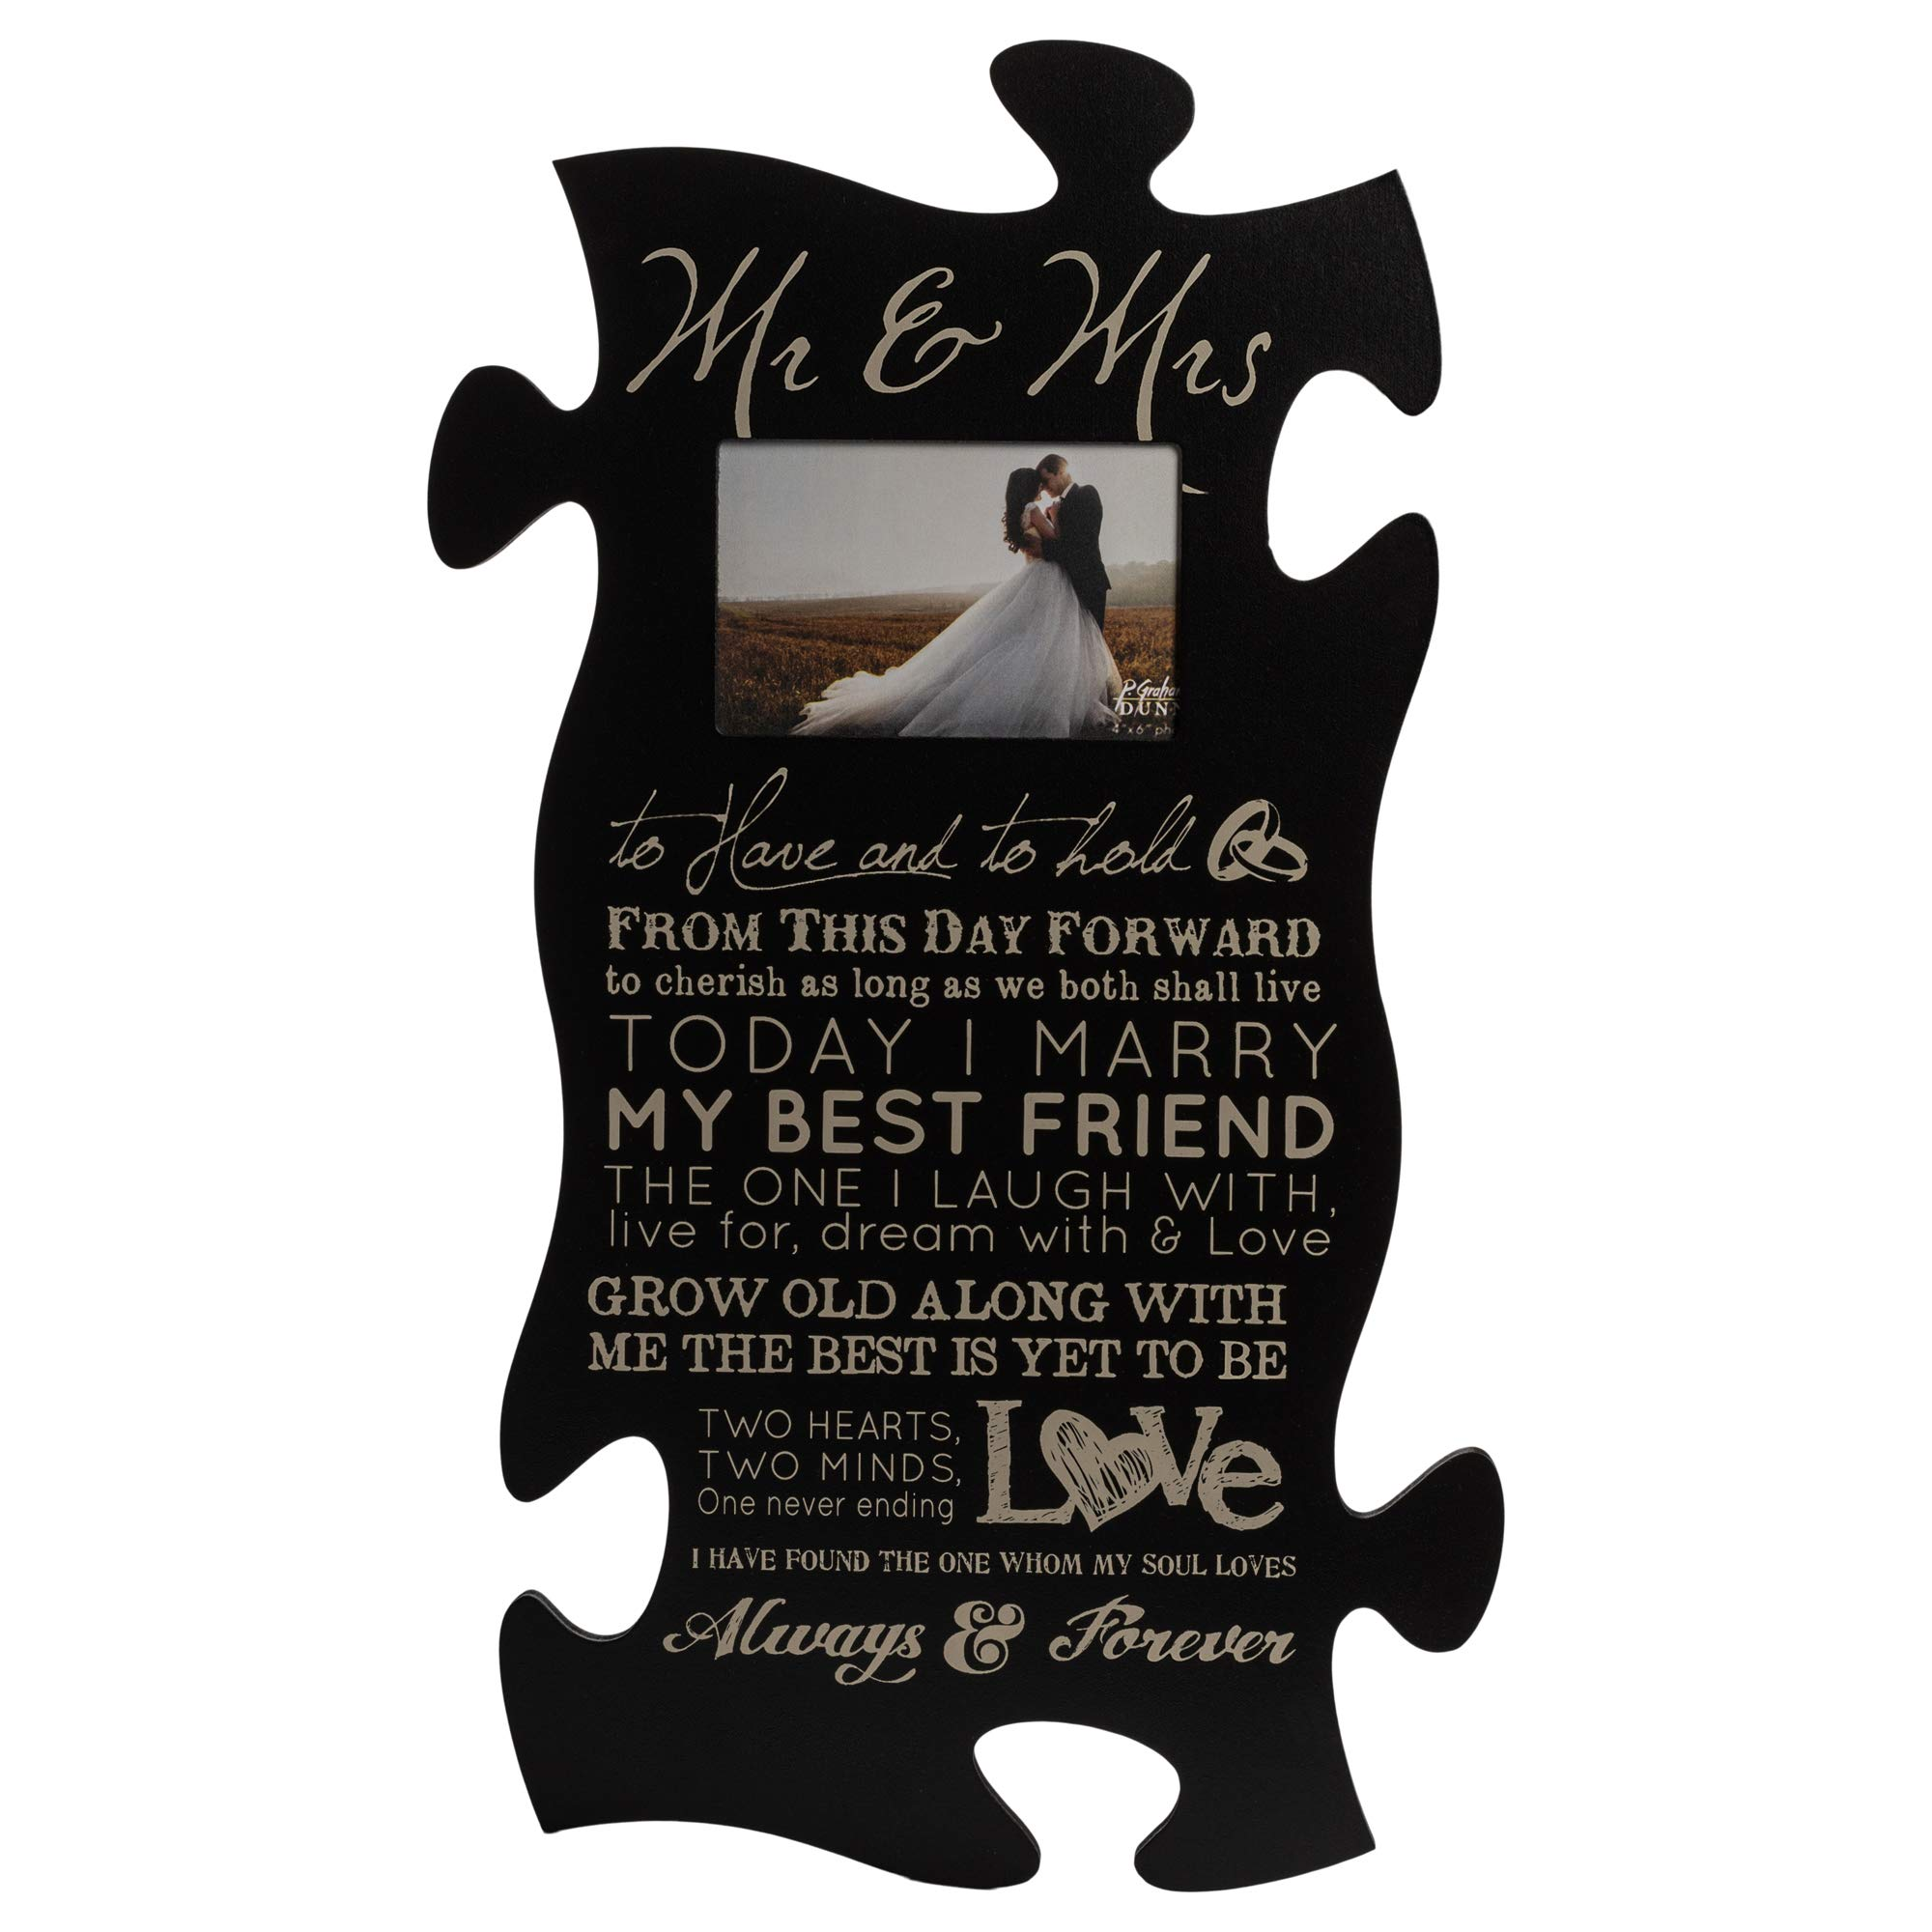 P. Graham Dunn Mr & Mrs Always & Forever 4x6 Photo Frame 22 x 13 Wood Wall Art Puzzle Piece Plaque Frame